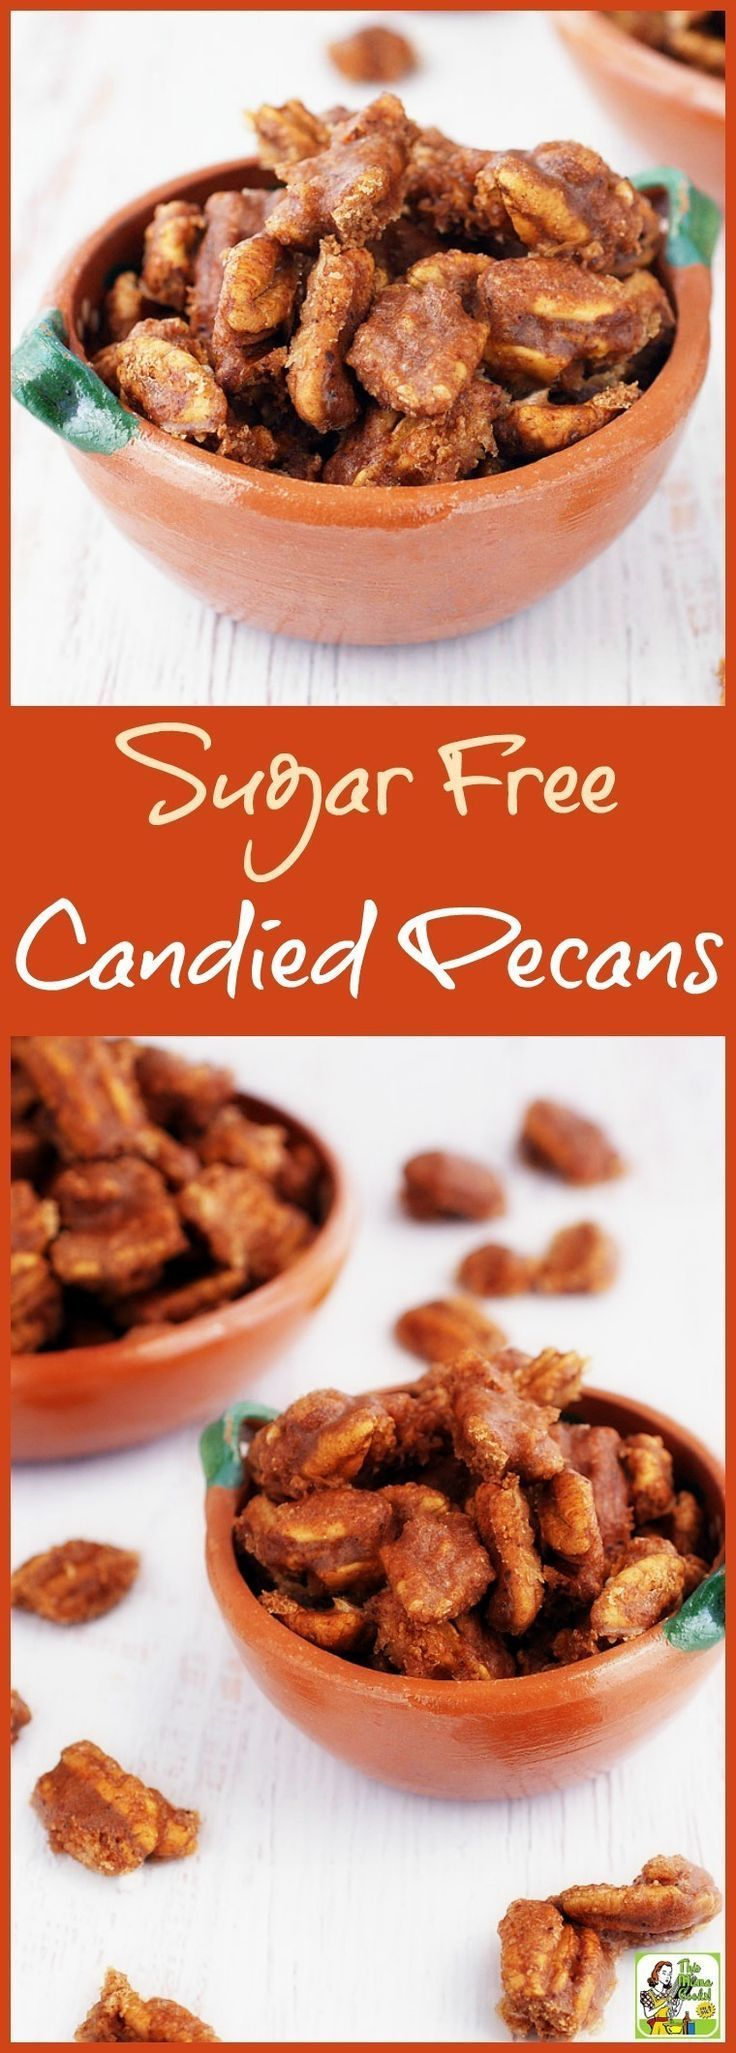 This easy Sugar Free Candied Pecans recipe makes a wonderful homemade gift. You can also use the sugar free candied pecans in salads, in baking, on yogurt, and in granola and trail mix. It's made with natural, no calorie sweeteners for a guilt free candie